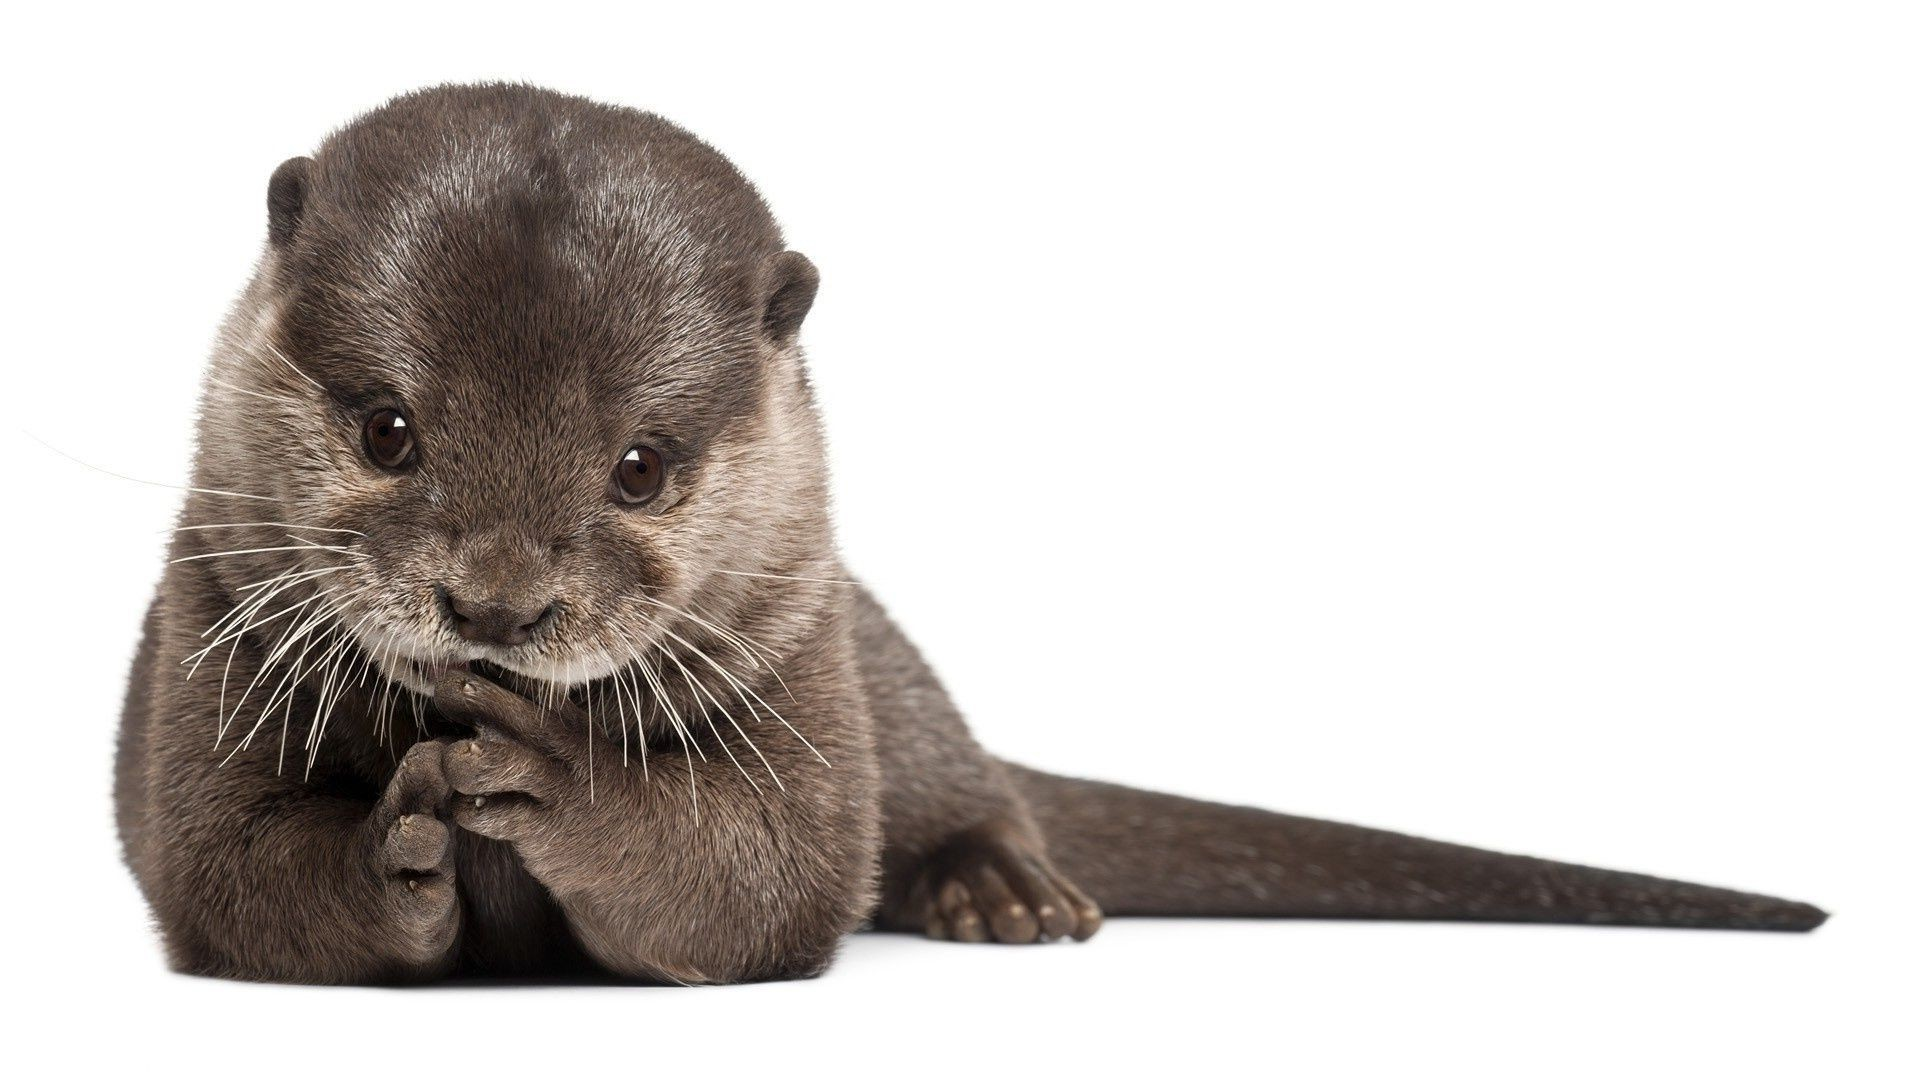 animals cute animal little mammal fur young looking whisker